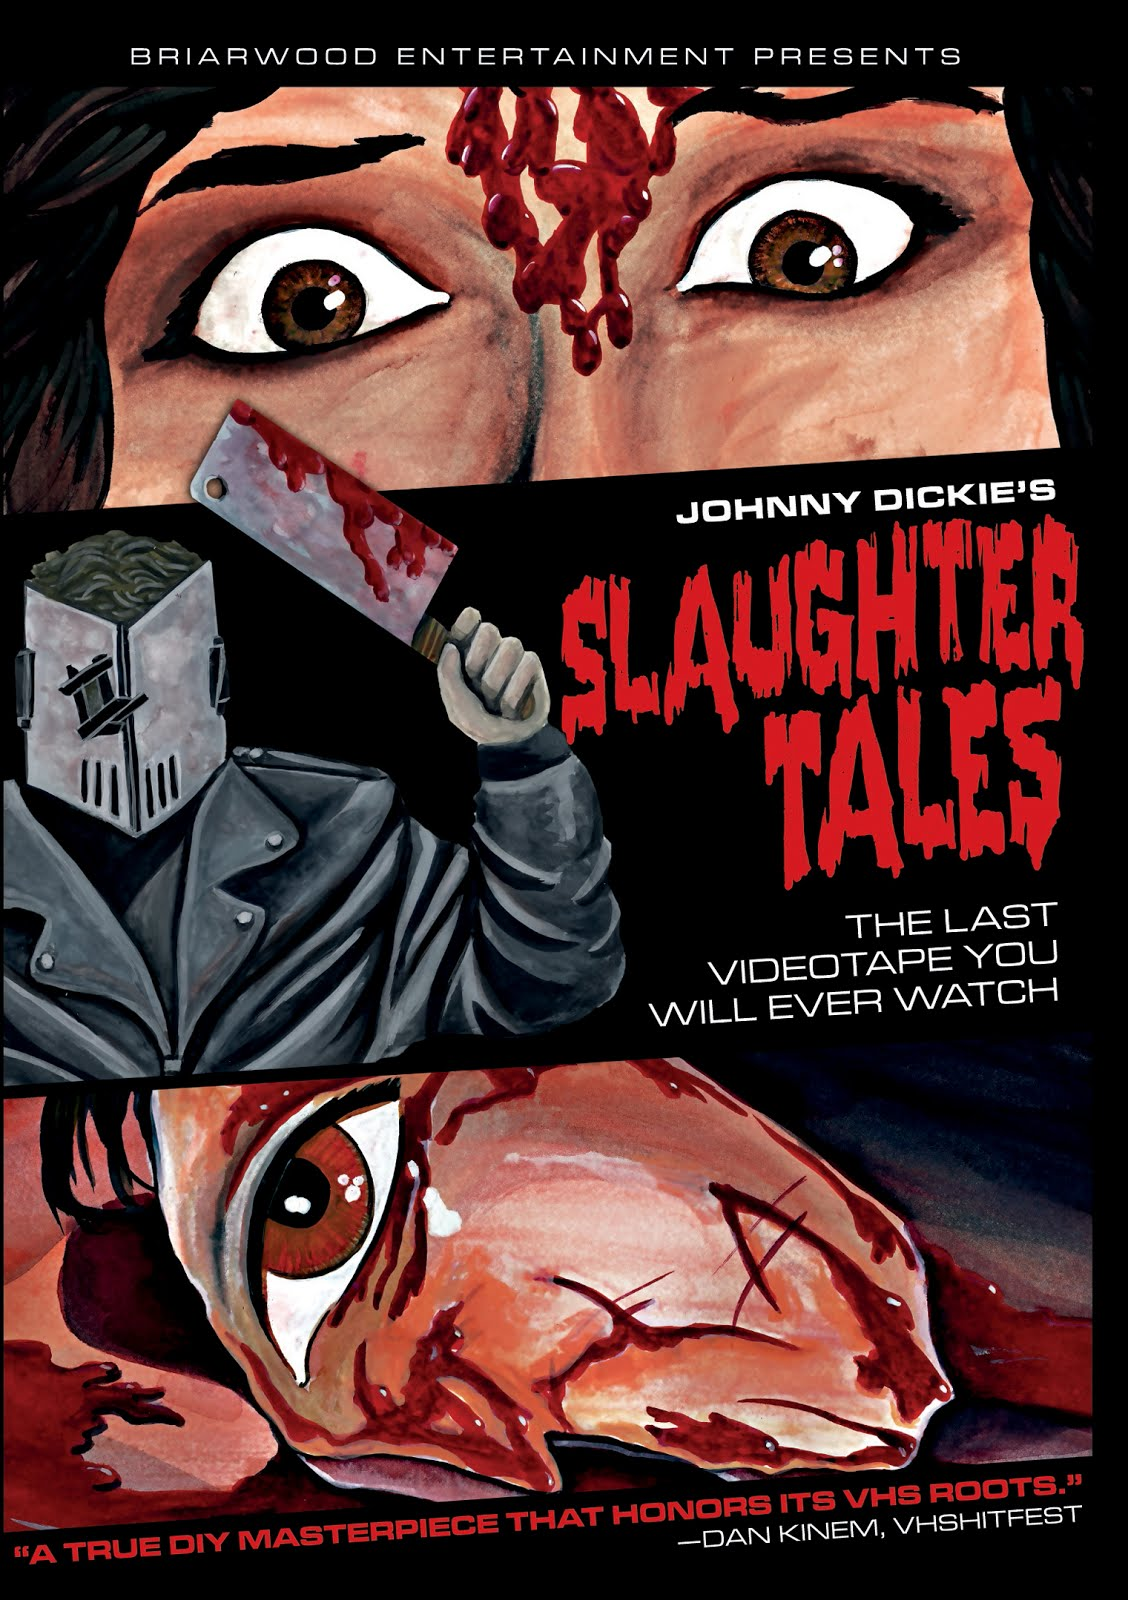 46a892a4e DVD Review: Johnny Dickie's Slaughter Tales